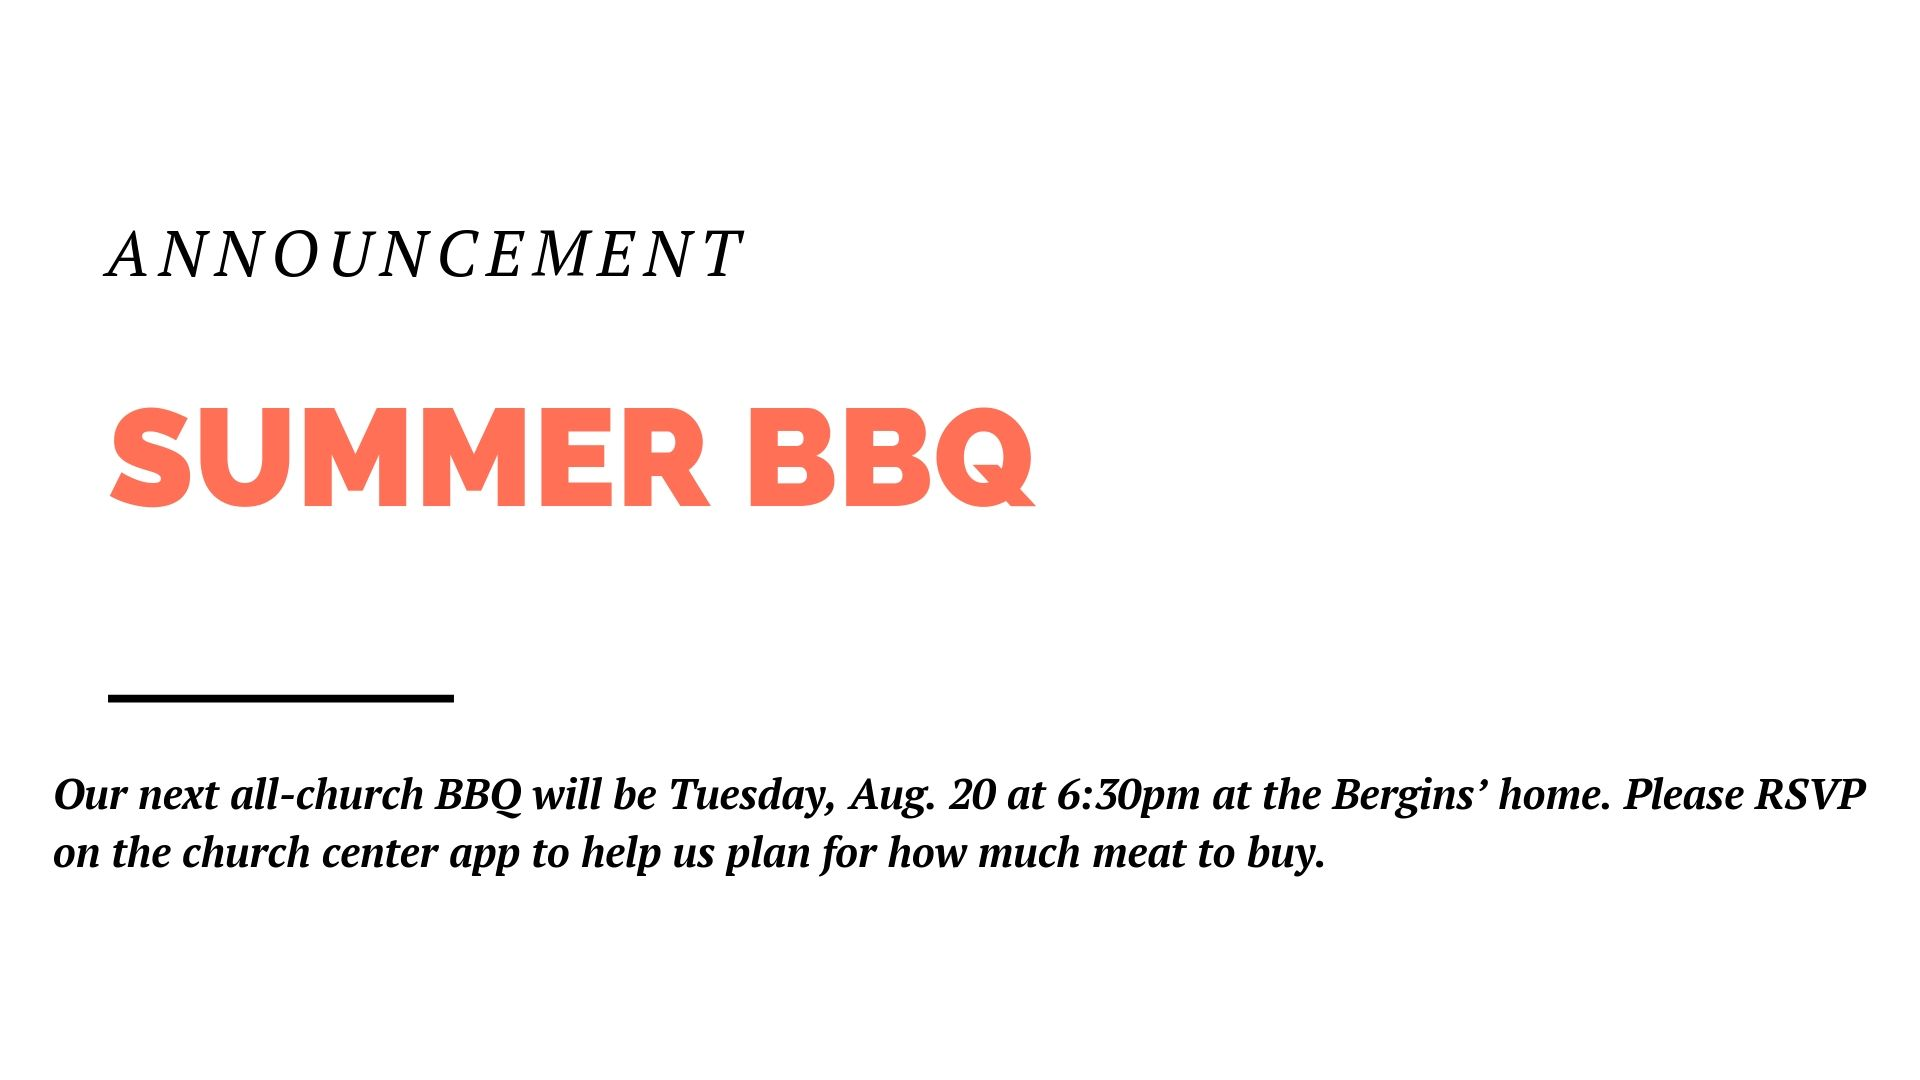 Our next all-church BBQ will be Tuesday, Aug. 20 at 6:30pm at the Bergins' home. Please RSVP on the church center app to help us plan for how much meat to buy.